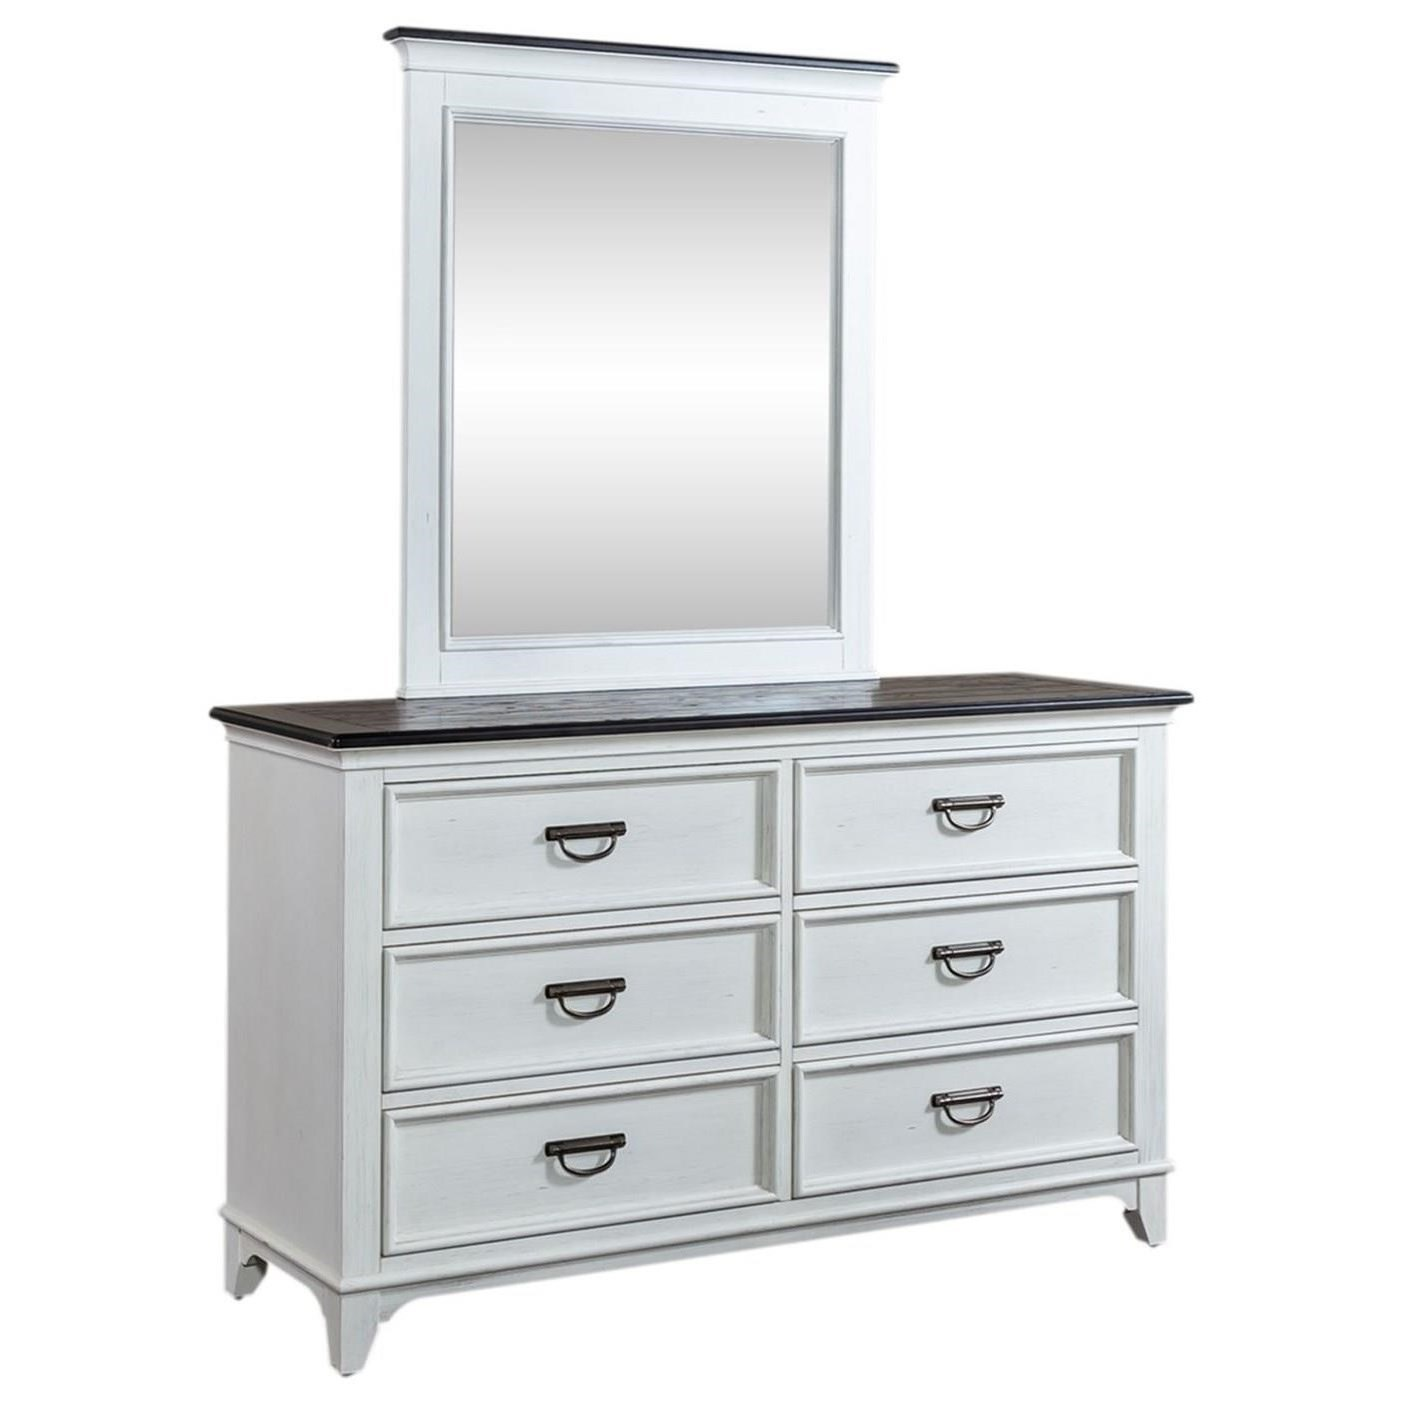 Allyson Park Dresser & Mirror by Liberty Furniture at Northeast Factory Direct